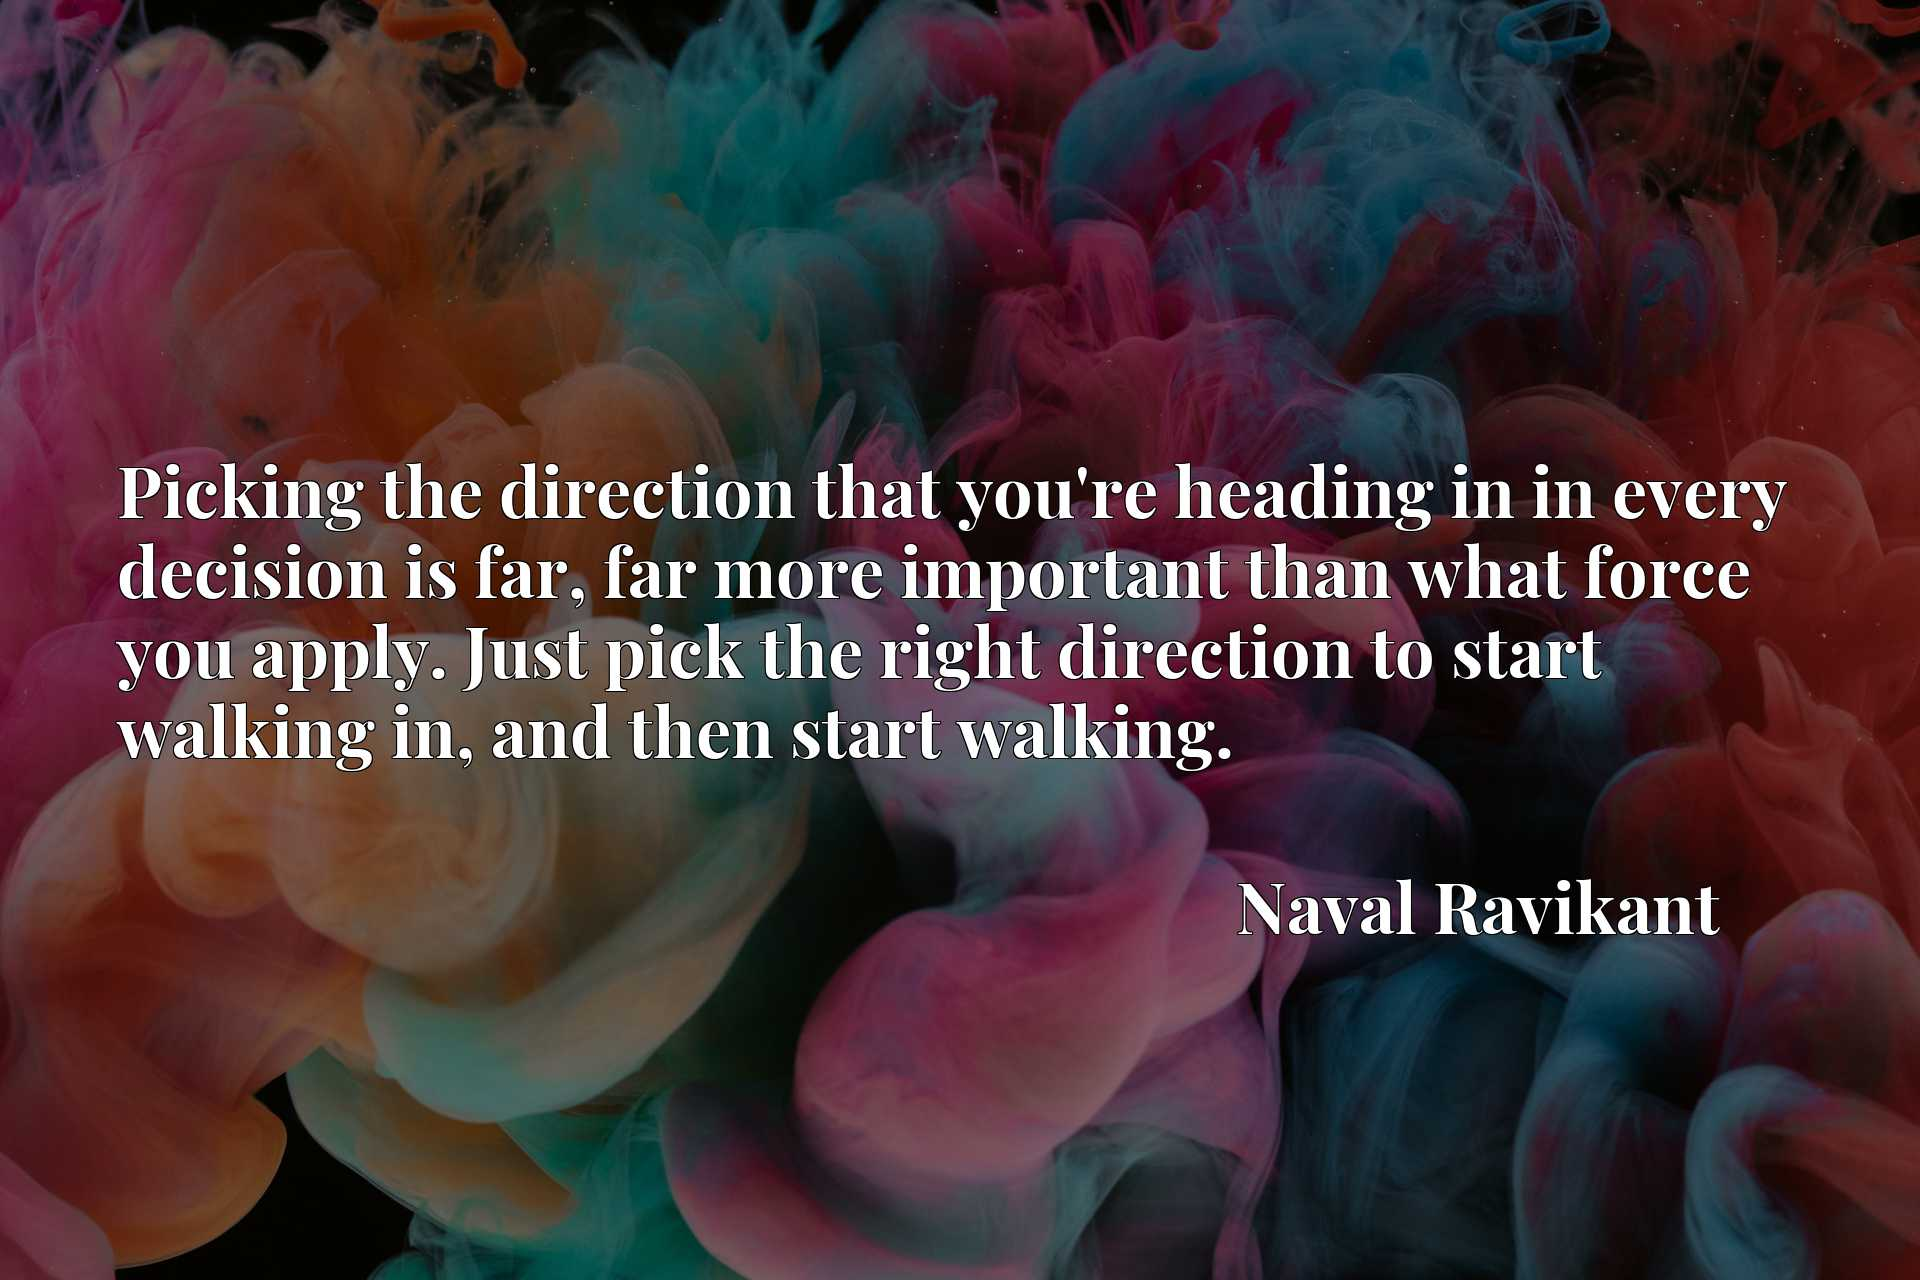 Picking the direction that you're heading in in every decision is far, far more important than what force you apply. Just pick the right direction to start walking in, and then start walking.